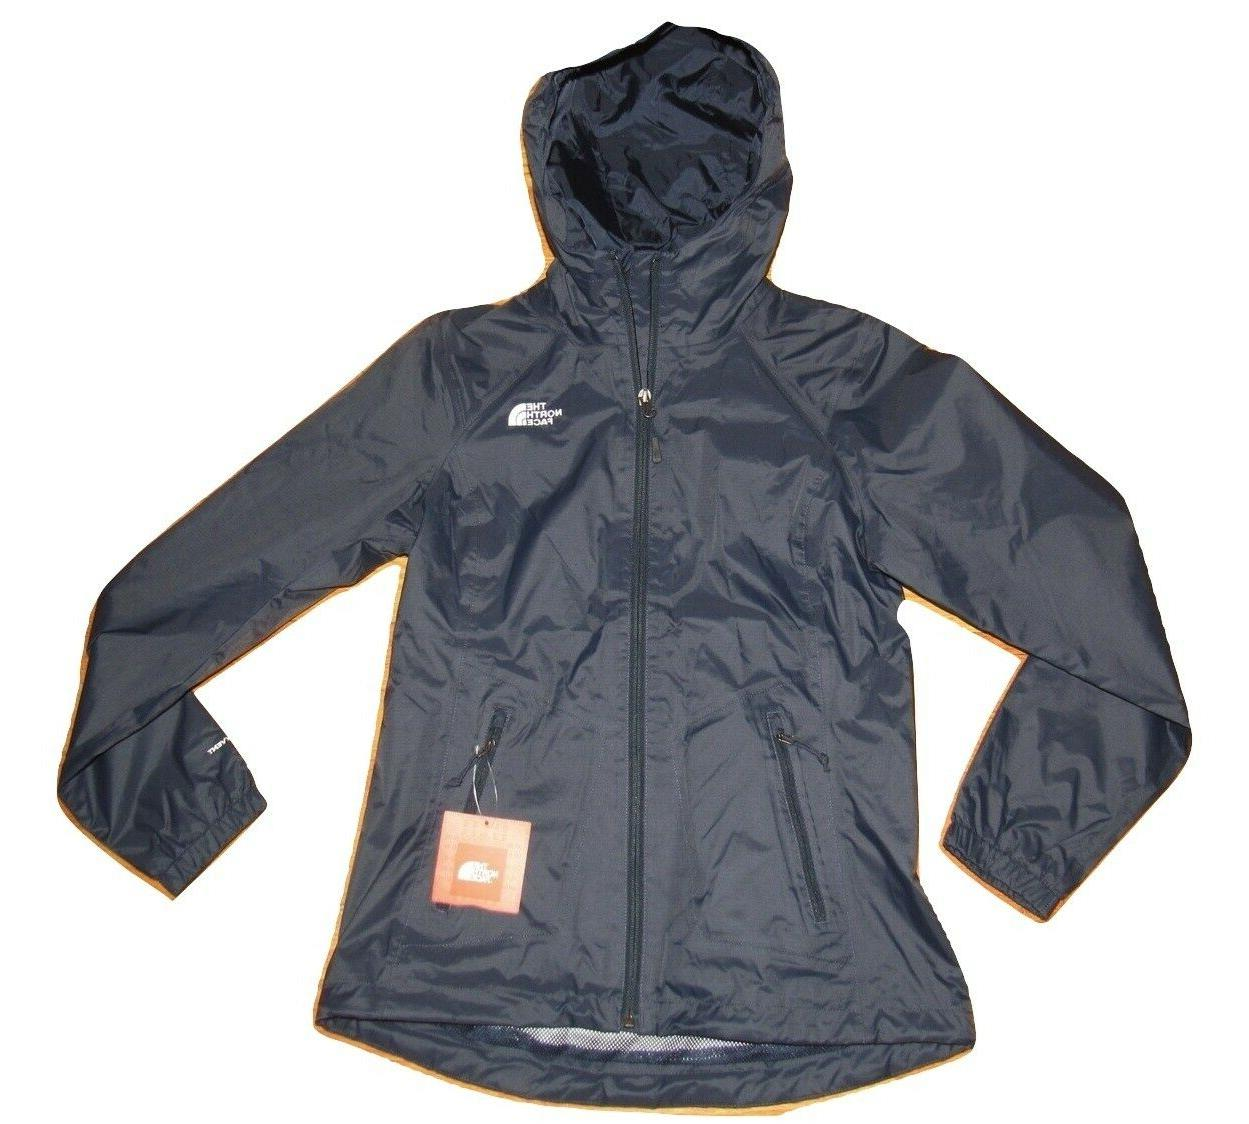 b265bcc99 The North Face Women's Boreal Rain Jacket Coat S SMALL NAVY BLUE NWT NEW $99